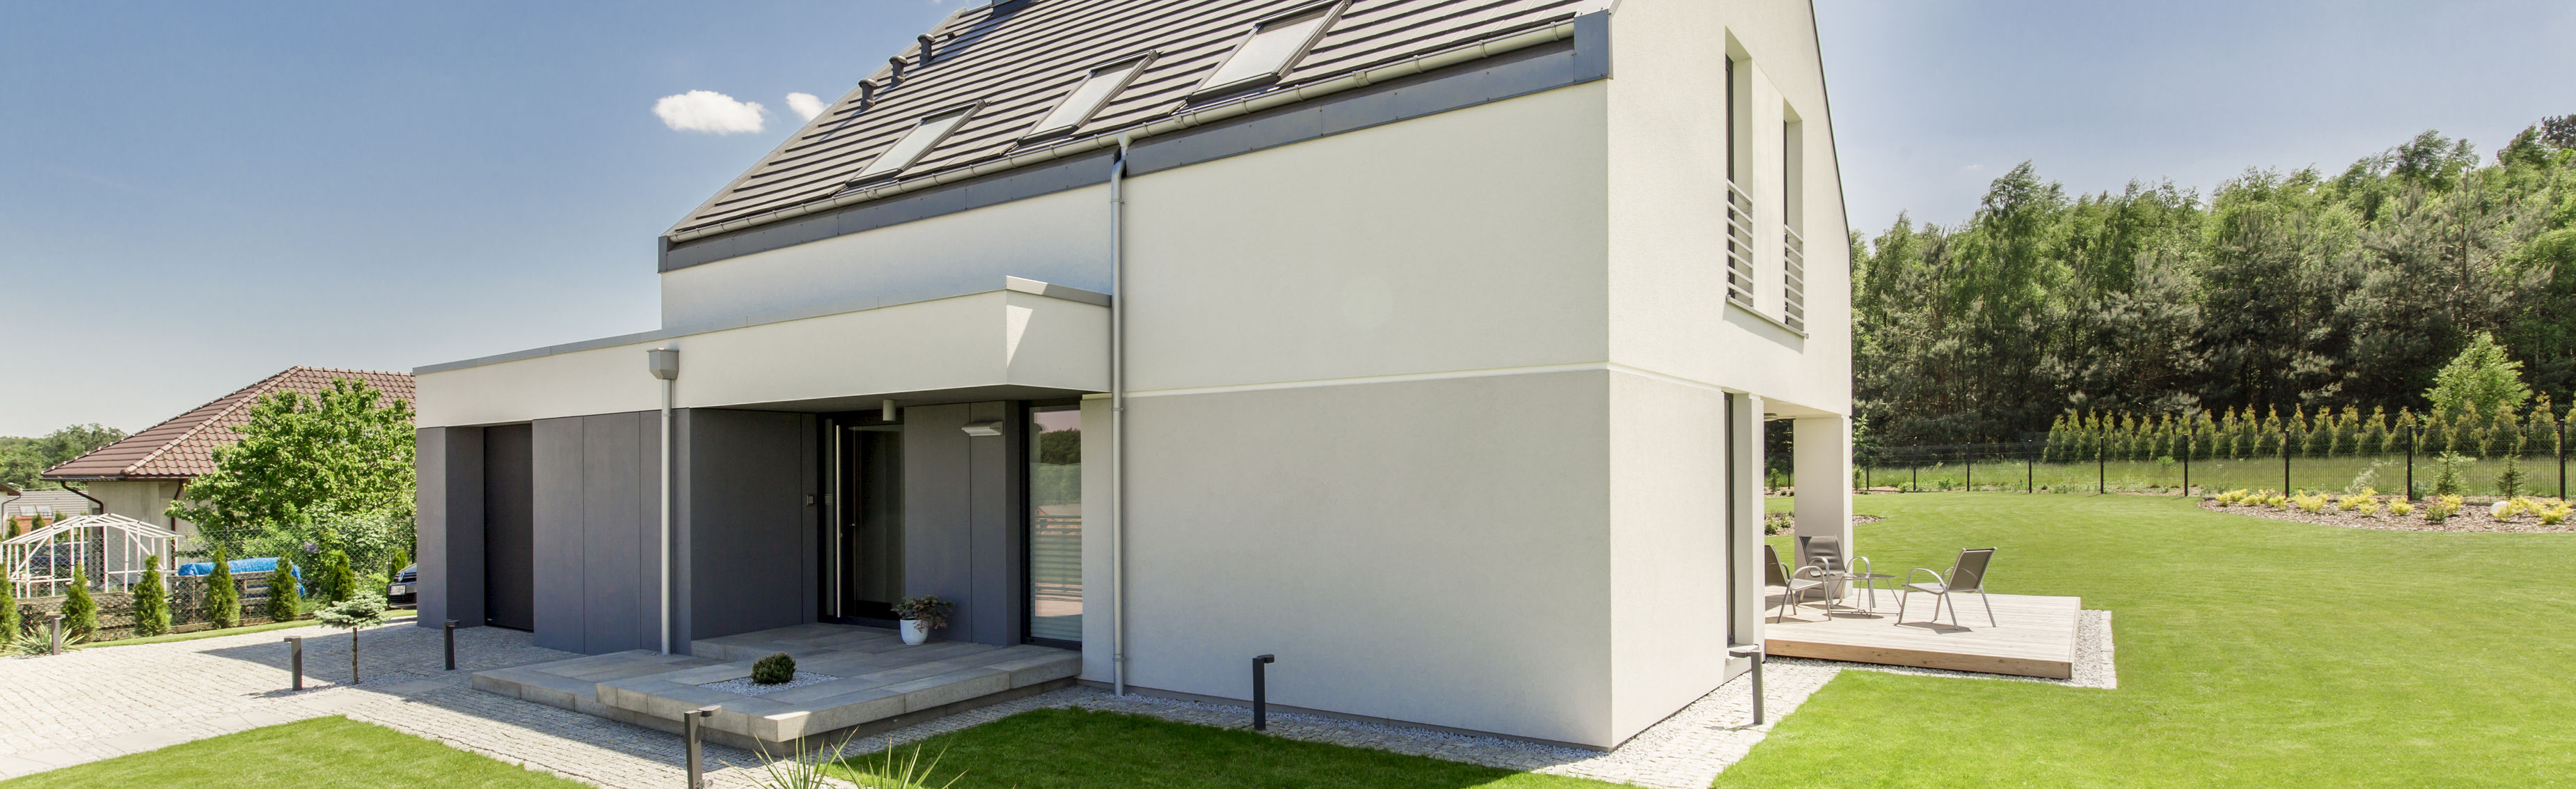 Article image for The do's and don'ts regarding carports… does yours meet council regulation?